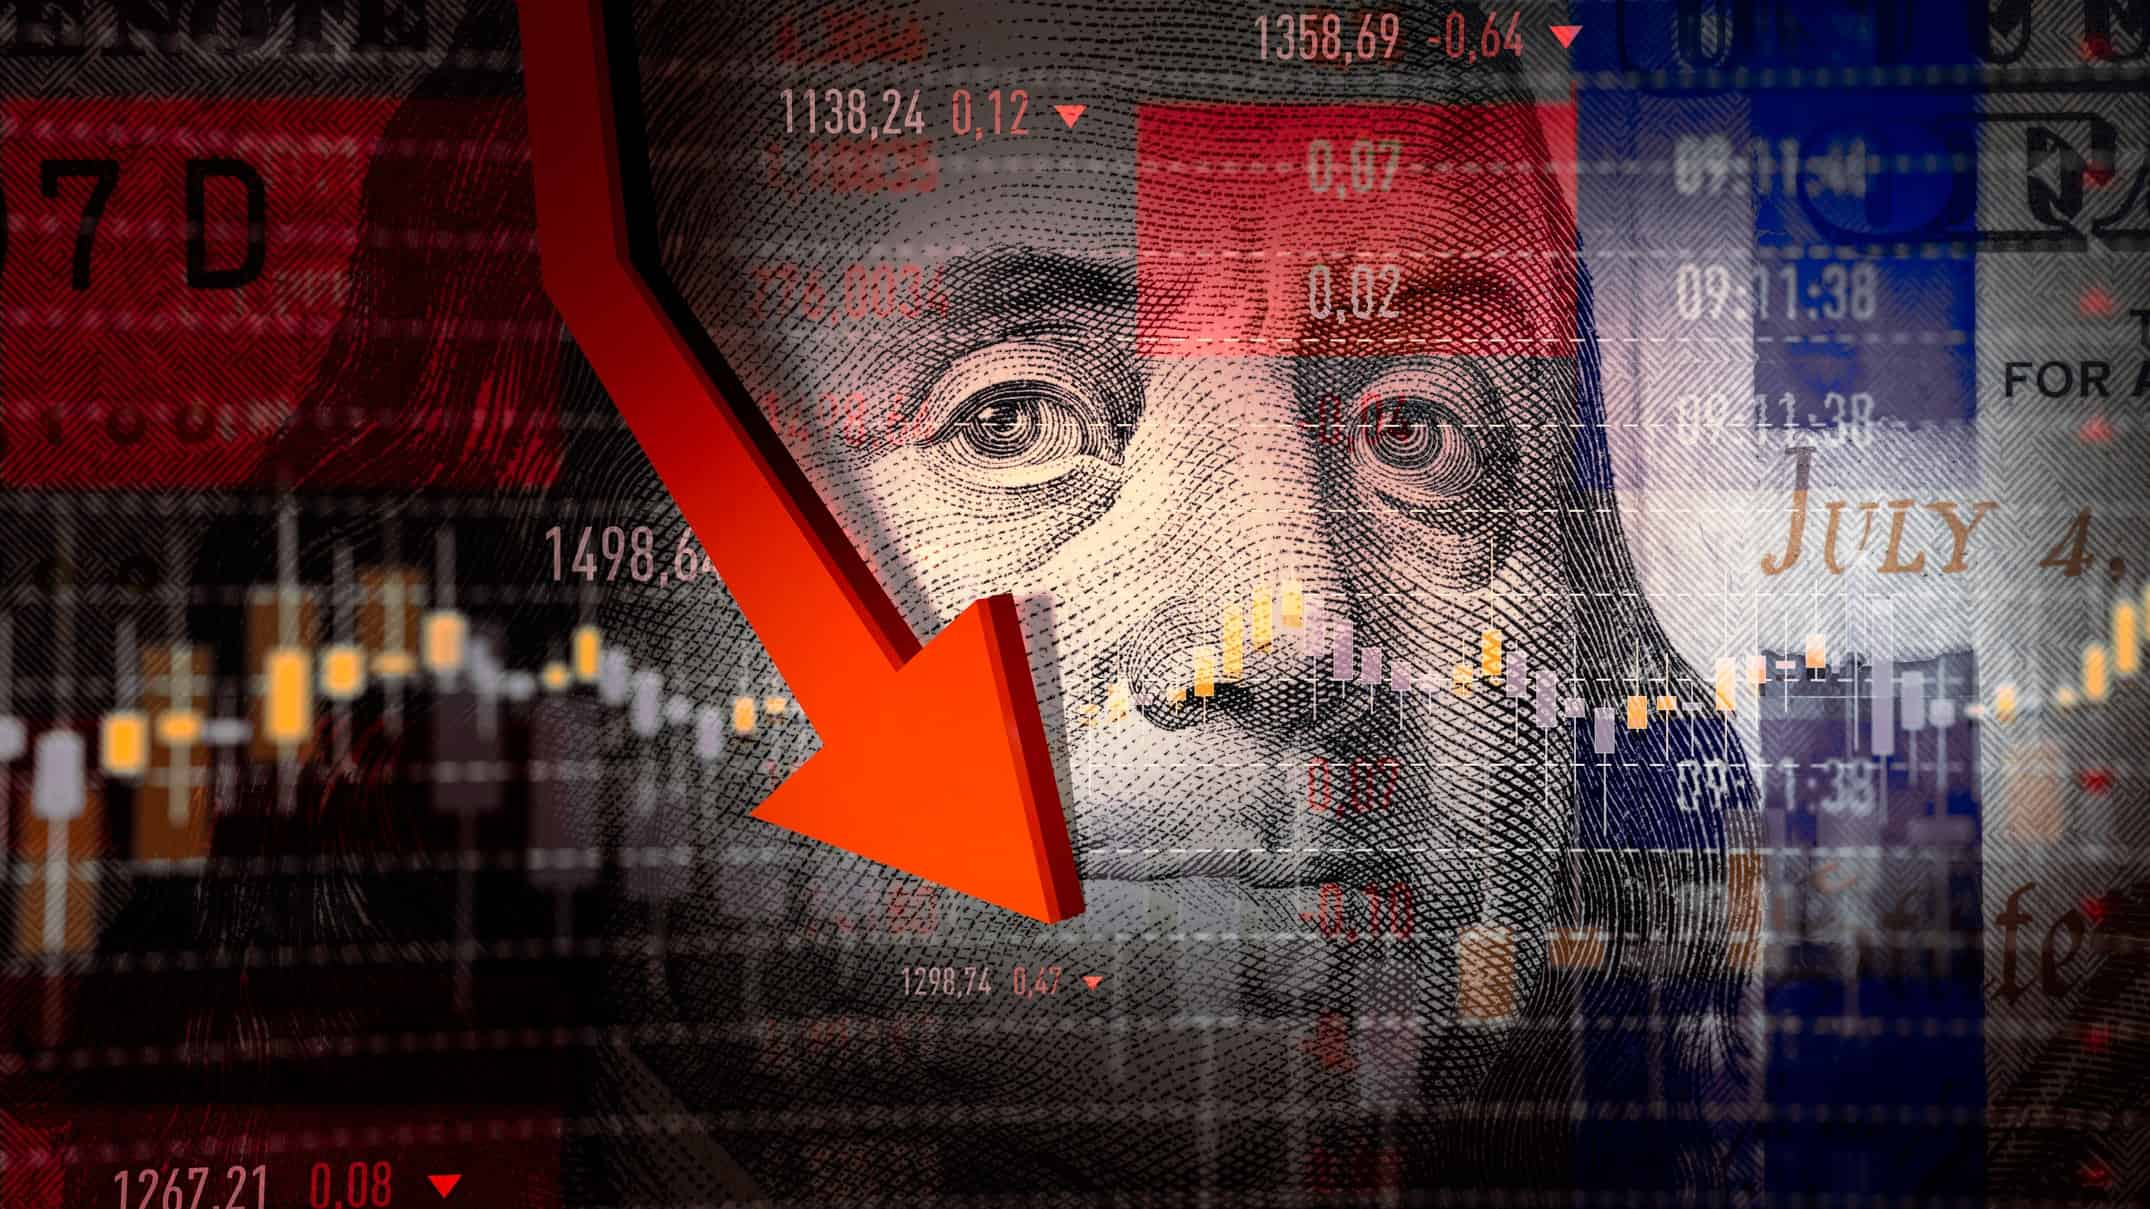 Concept image of US dollar in front of a graphic showing shares and an downward arrow.